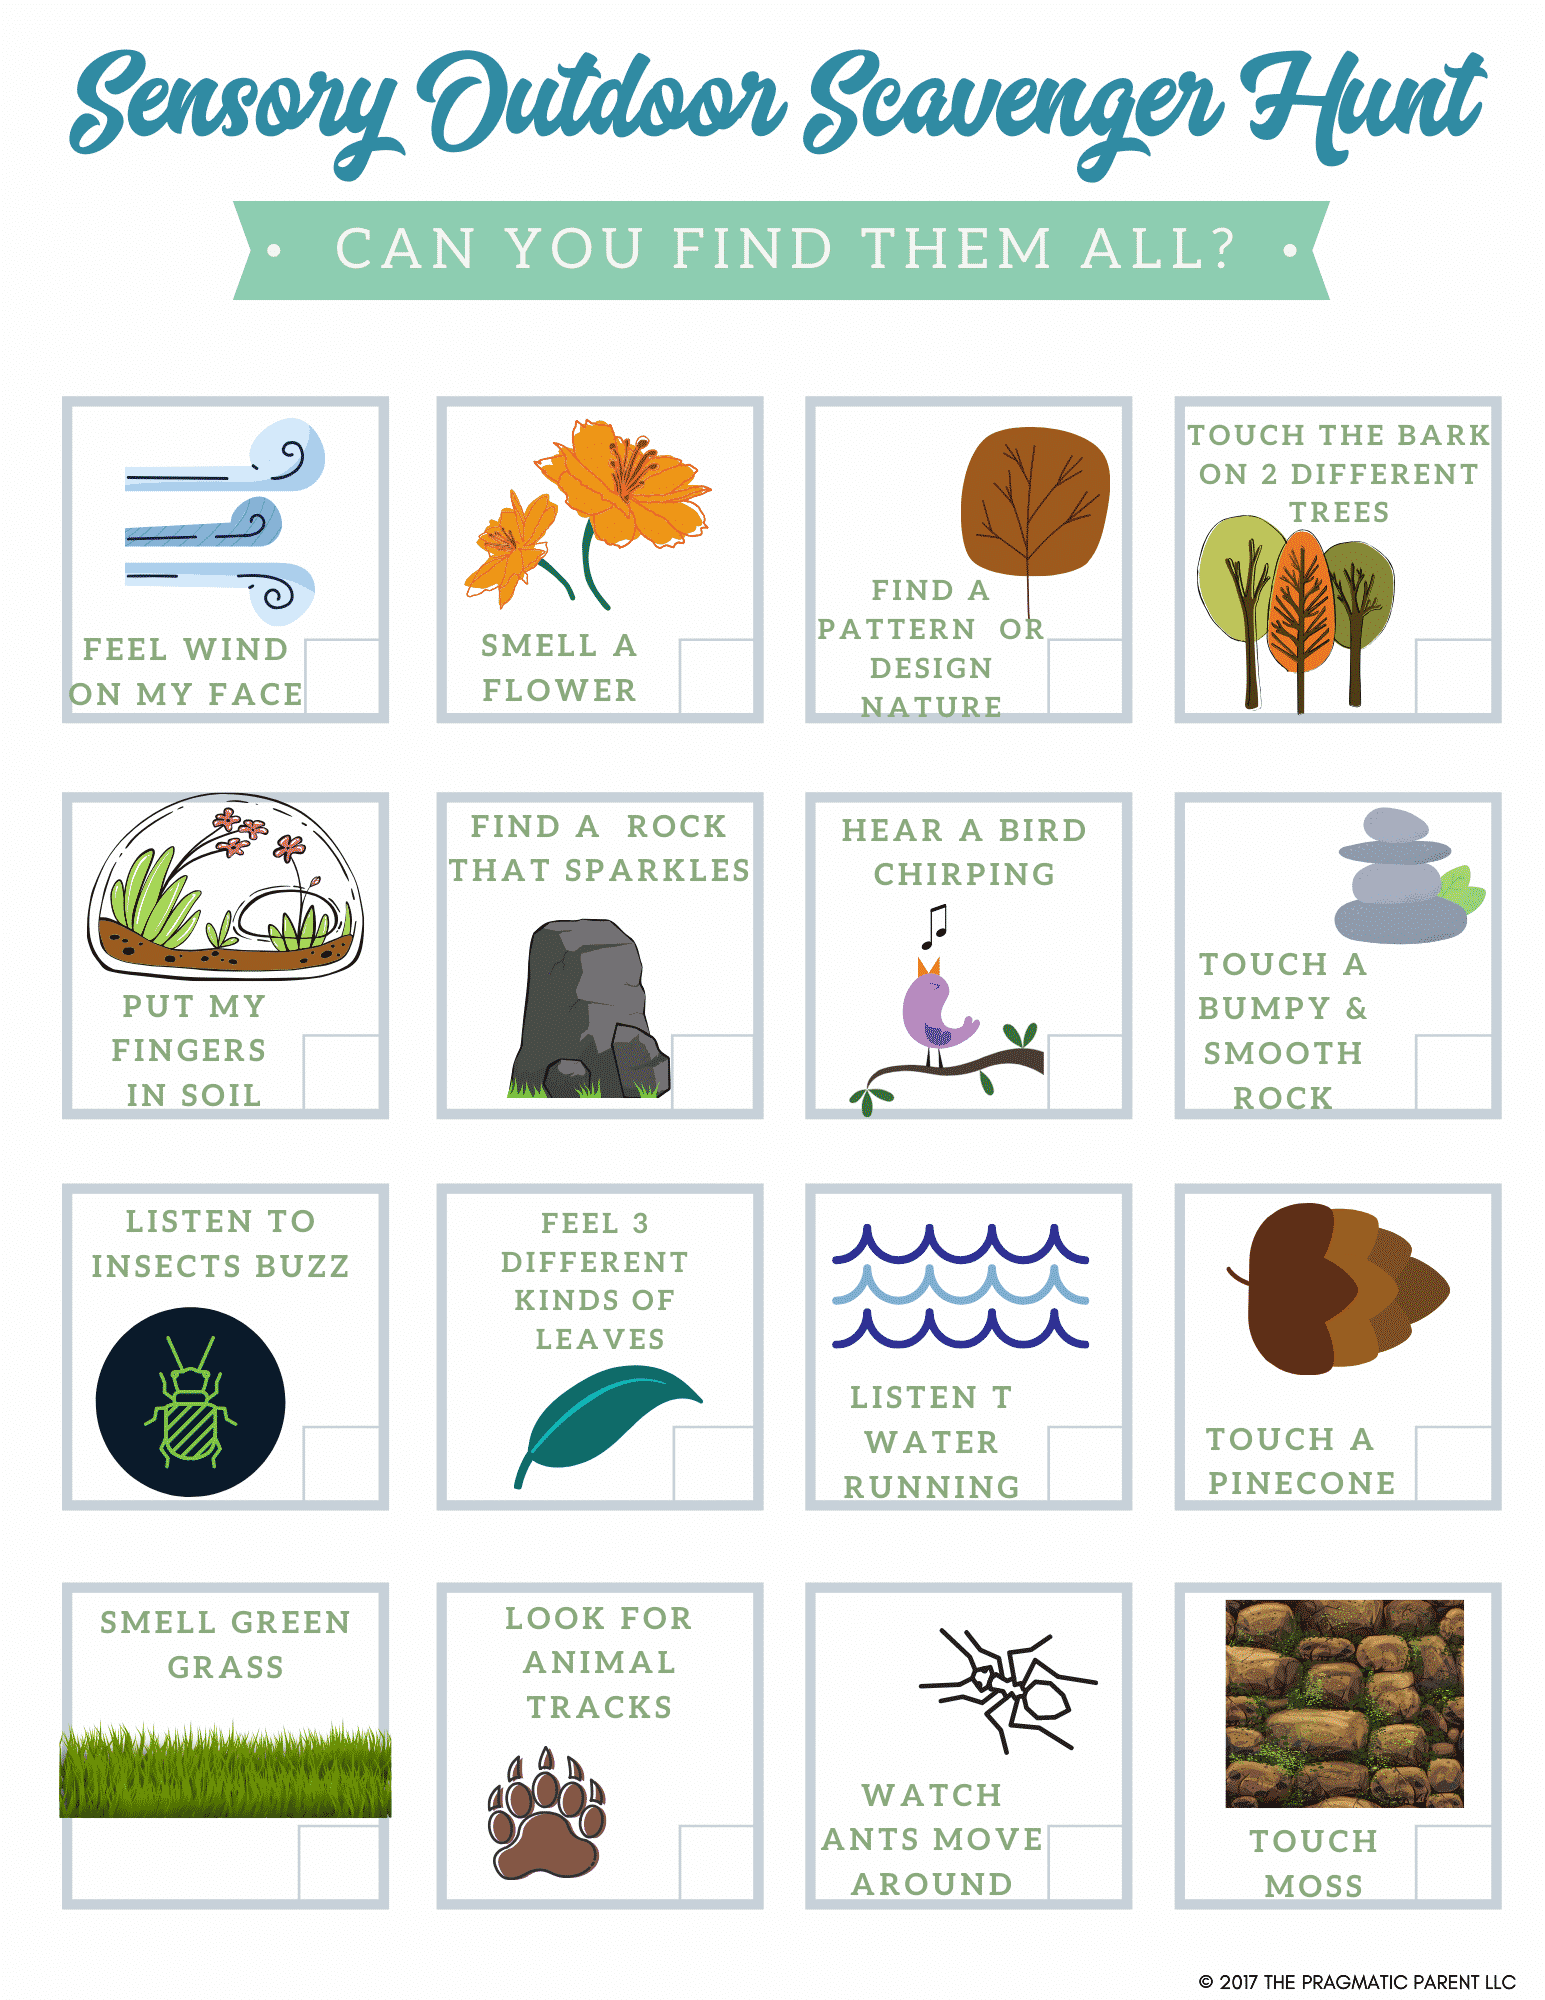 Explore The Outdoors Sensory Scavenger Hunt For Kids